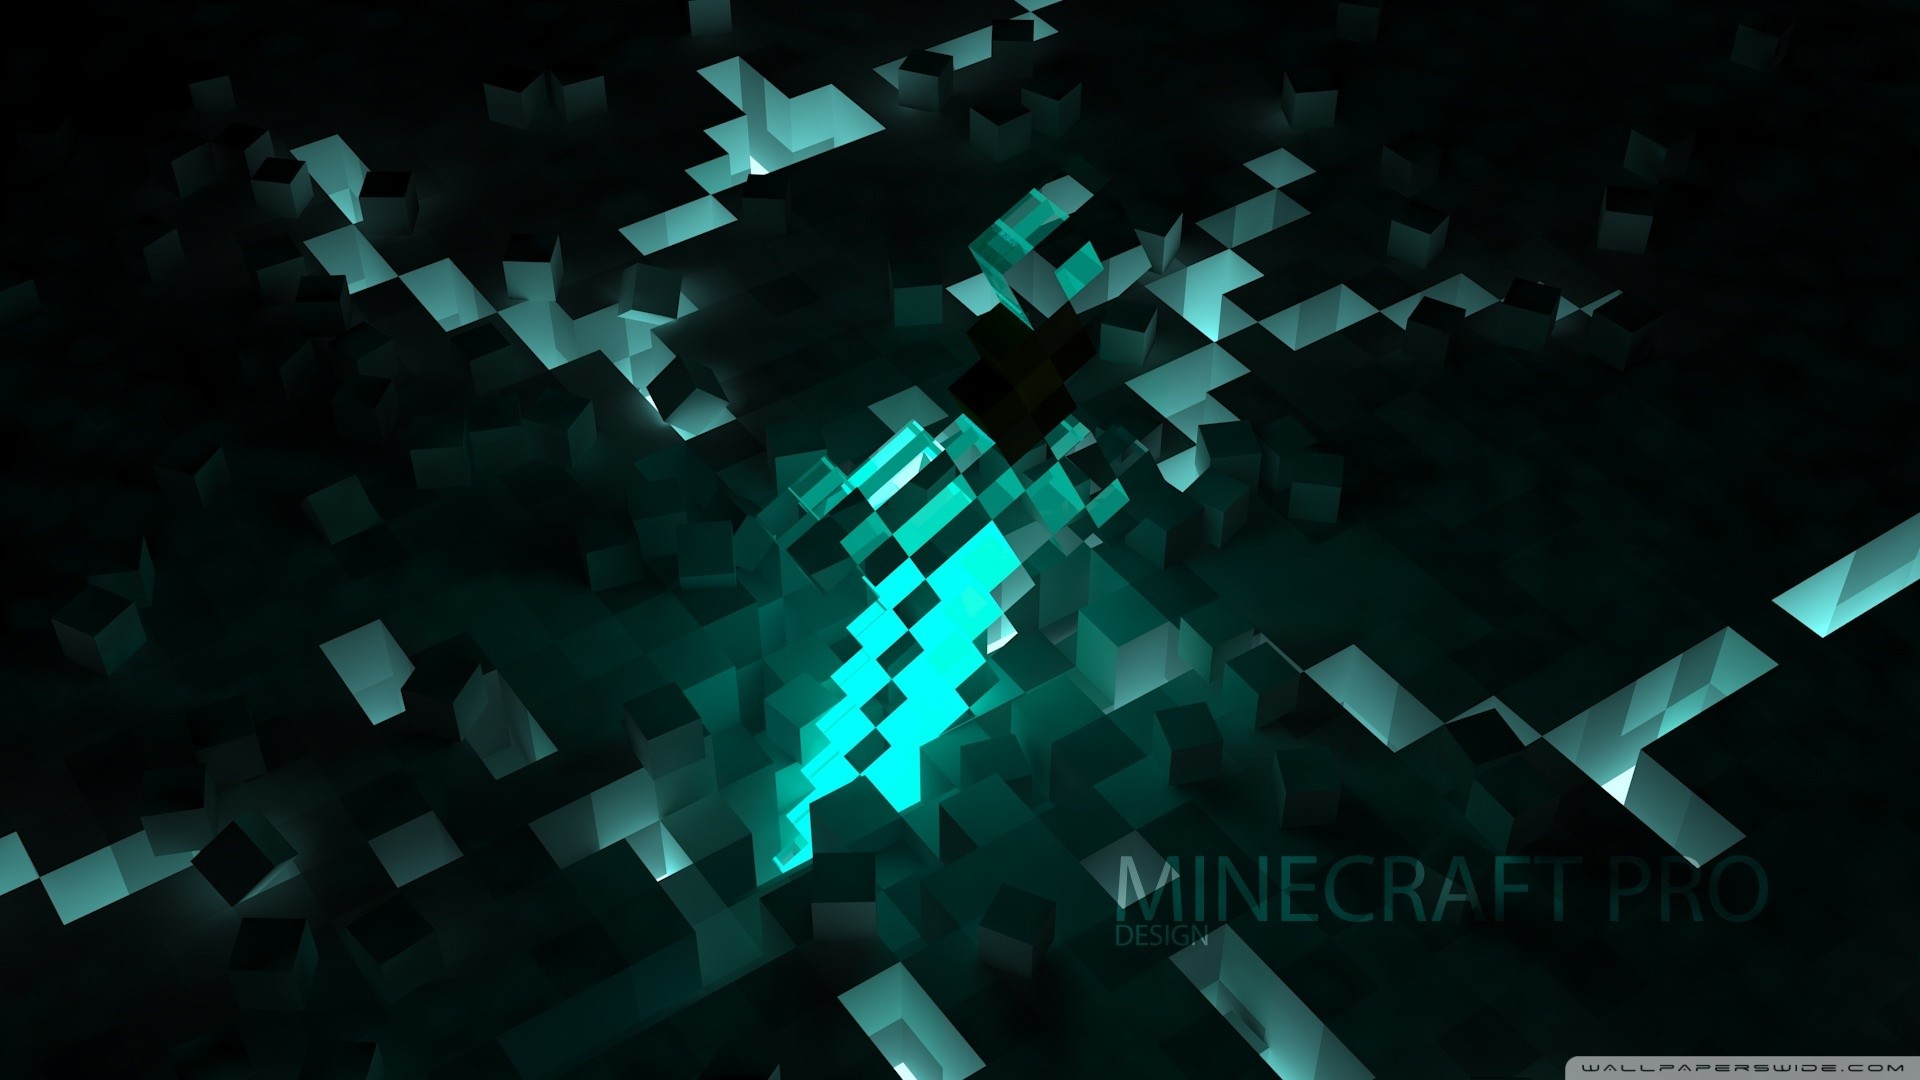 Minecraft Wallpapers HD download free